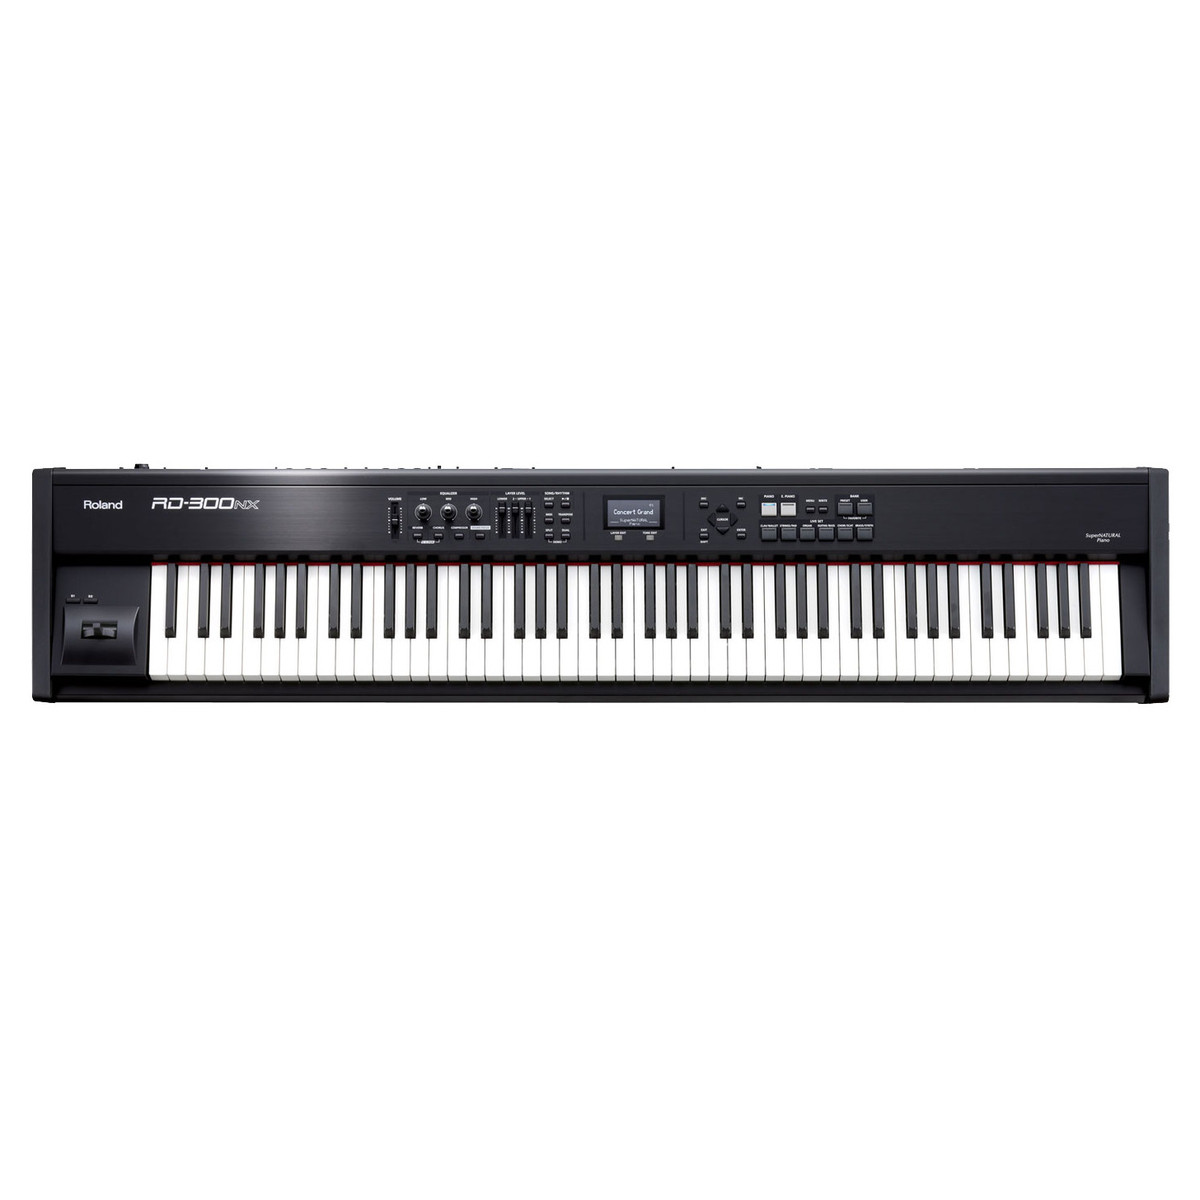 roland rd 300nx digital piano b stock at gear4music com rh gear4music com roland rd 300nx user manual roland rd 300nx manual portugues